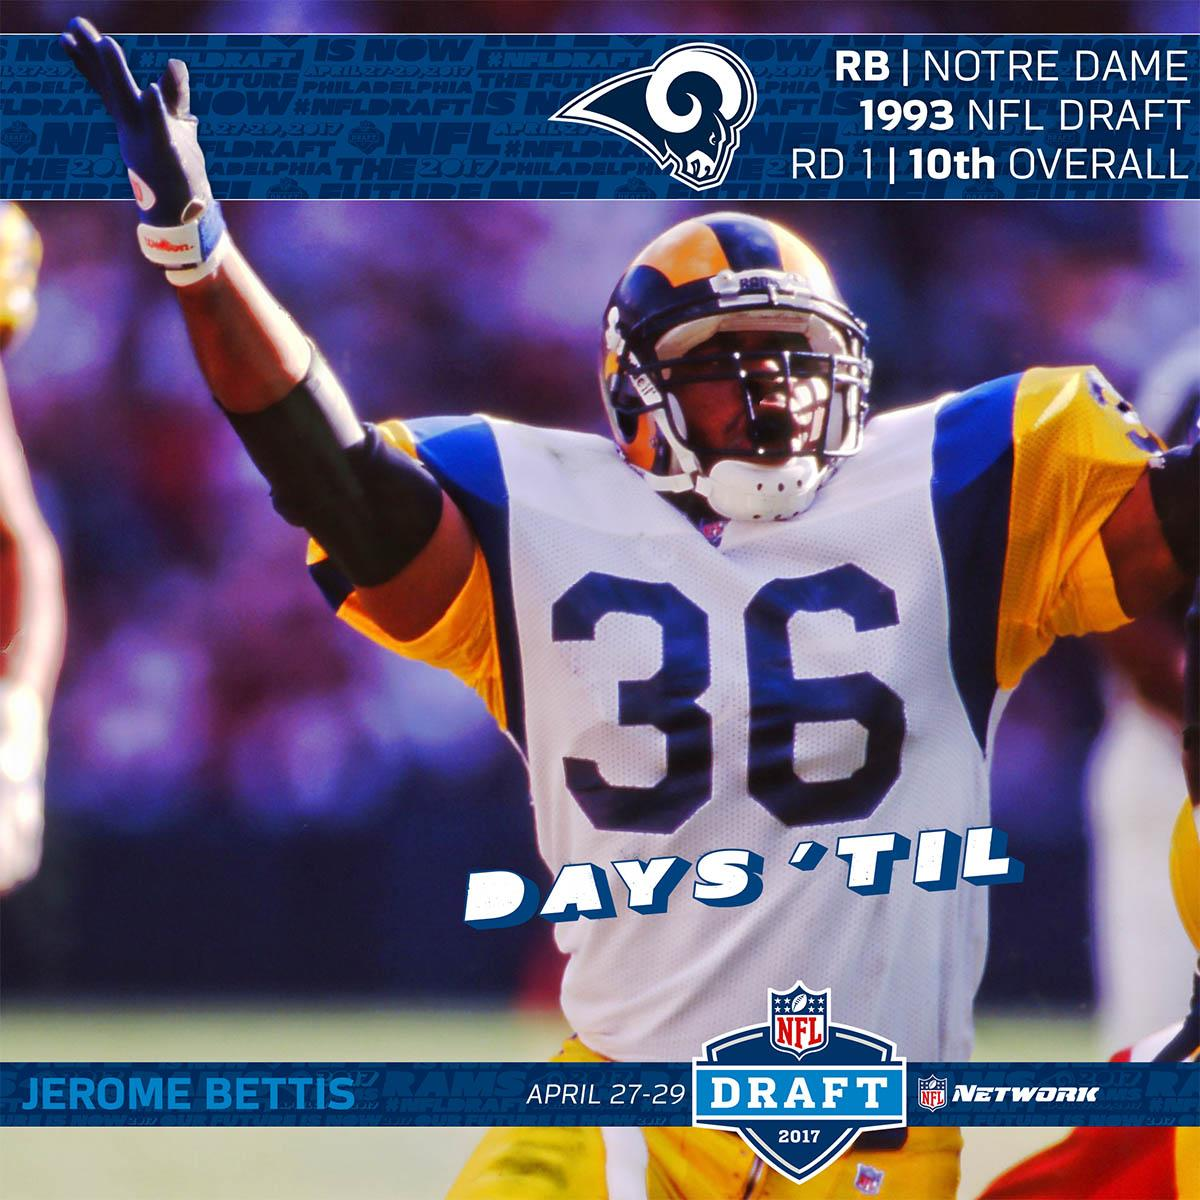 Only 36 Days until the #NFLDraft! https://t.co/XS9f6GD5Yn